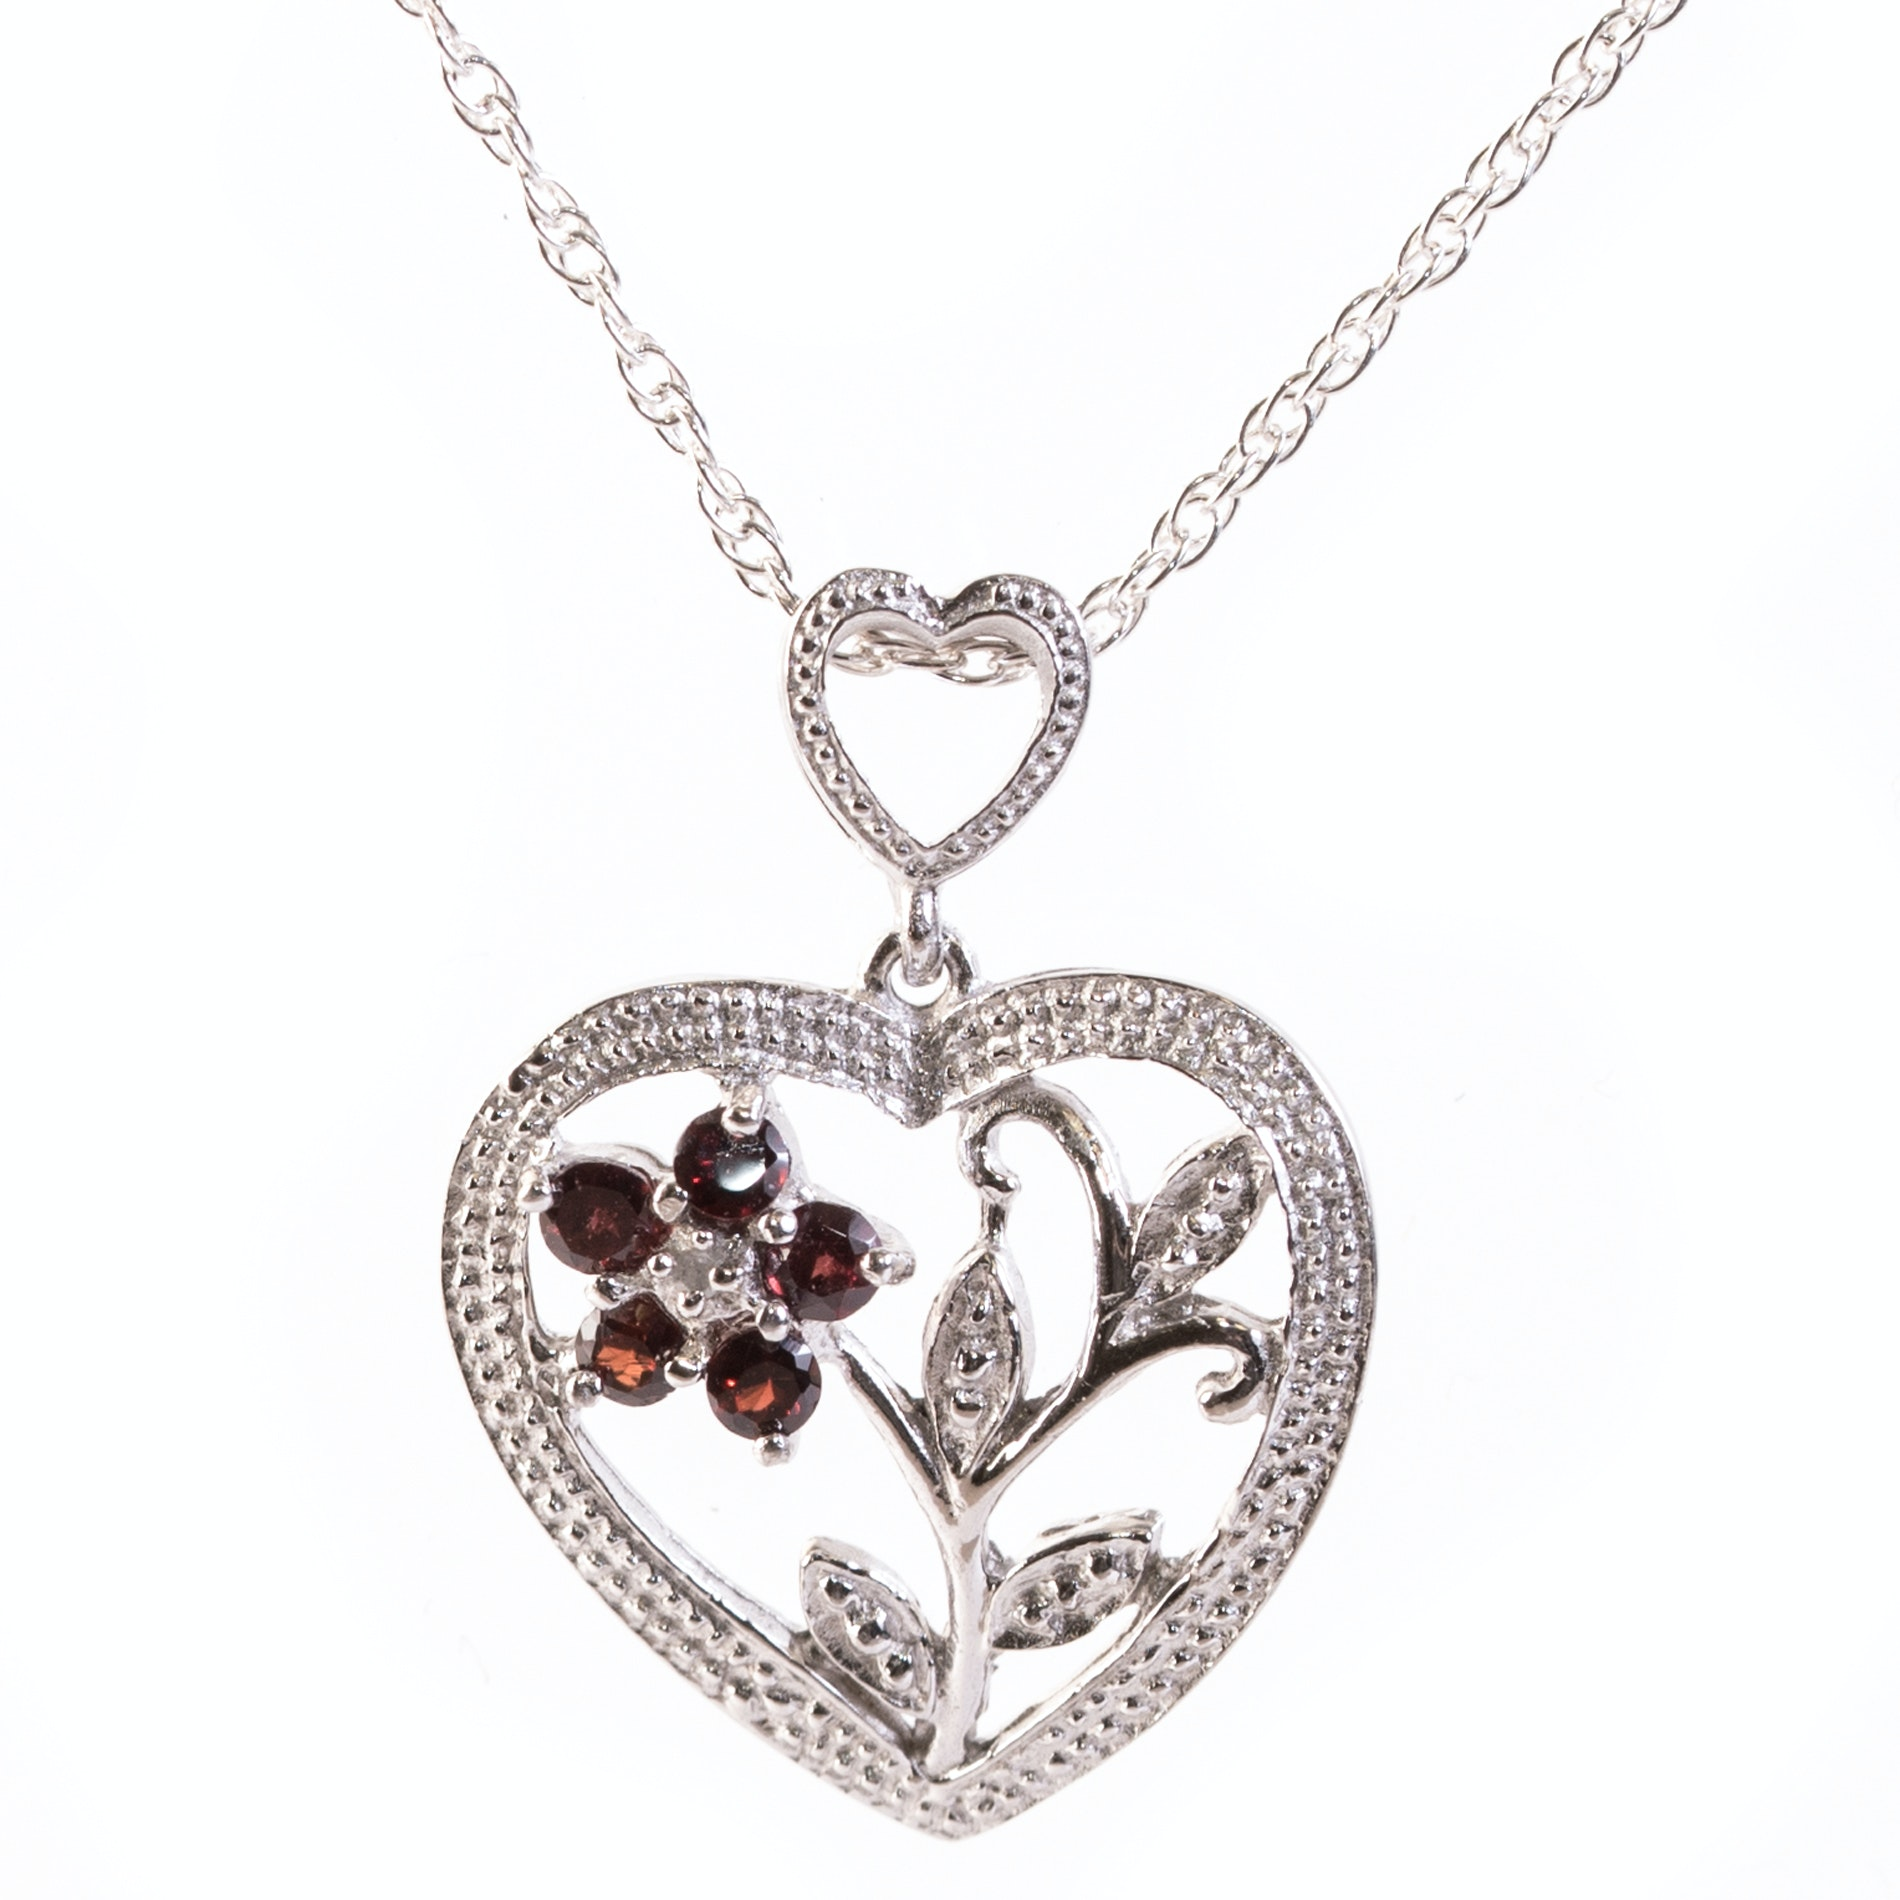 Sterling Silver, Garnet and Diamond Flower Pendant Necklace